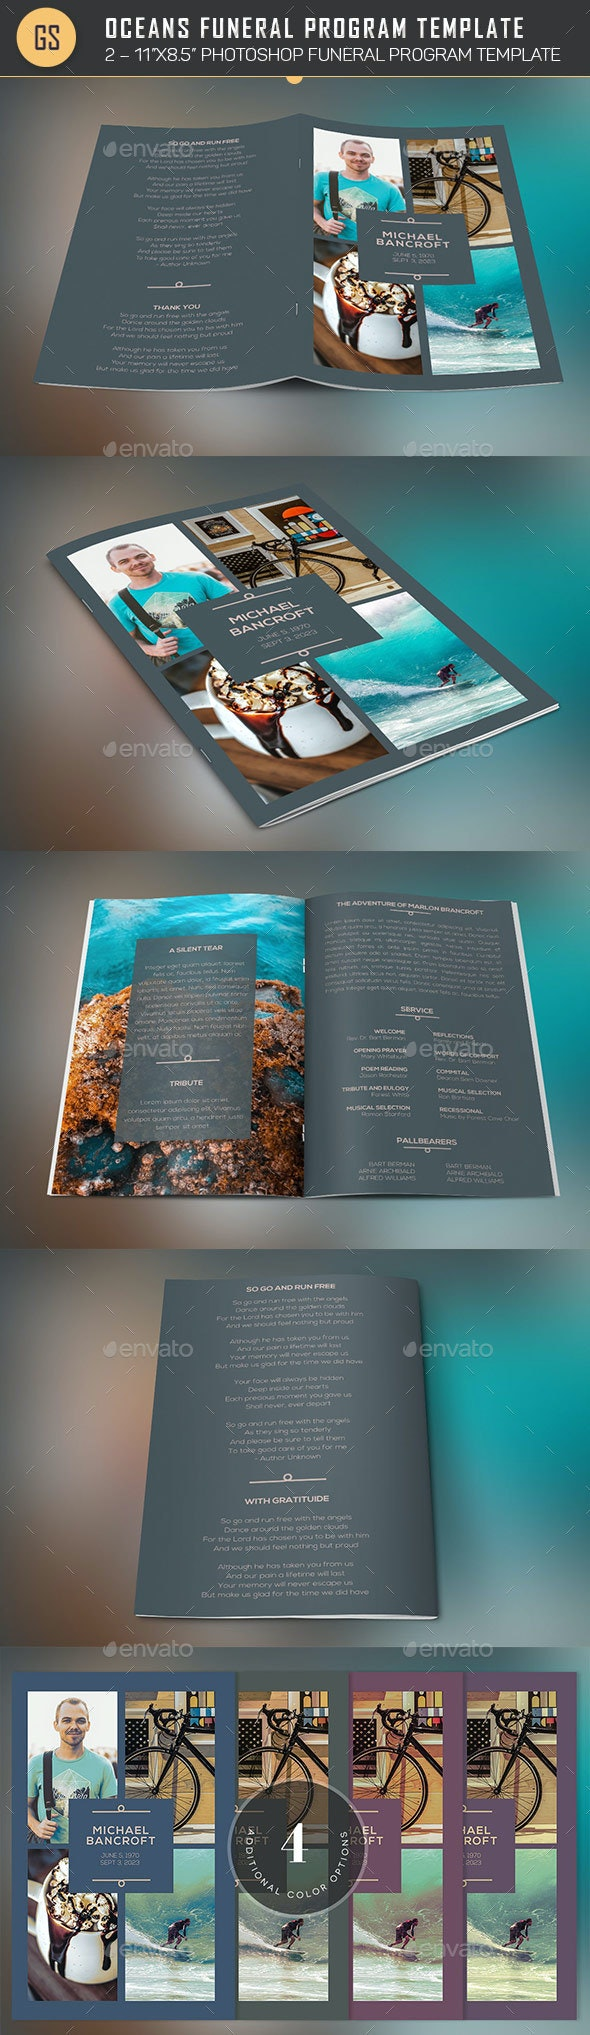 Oceans Funeral Program Template - 4 Pages - Church Flyers